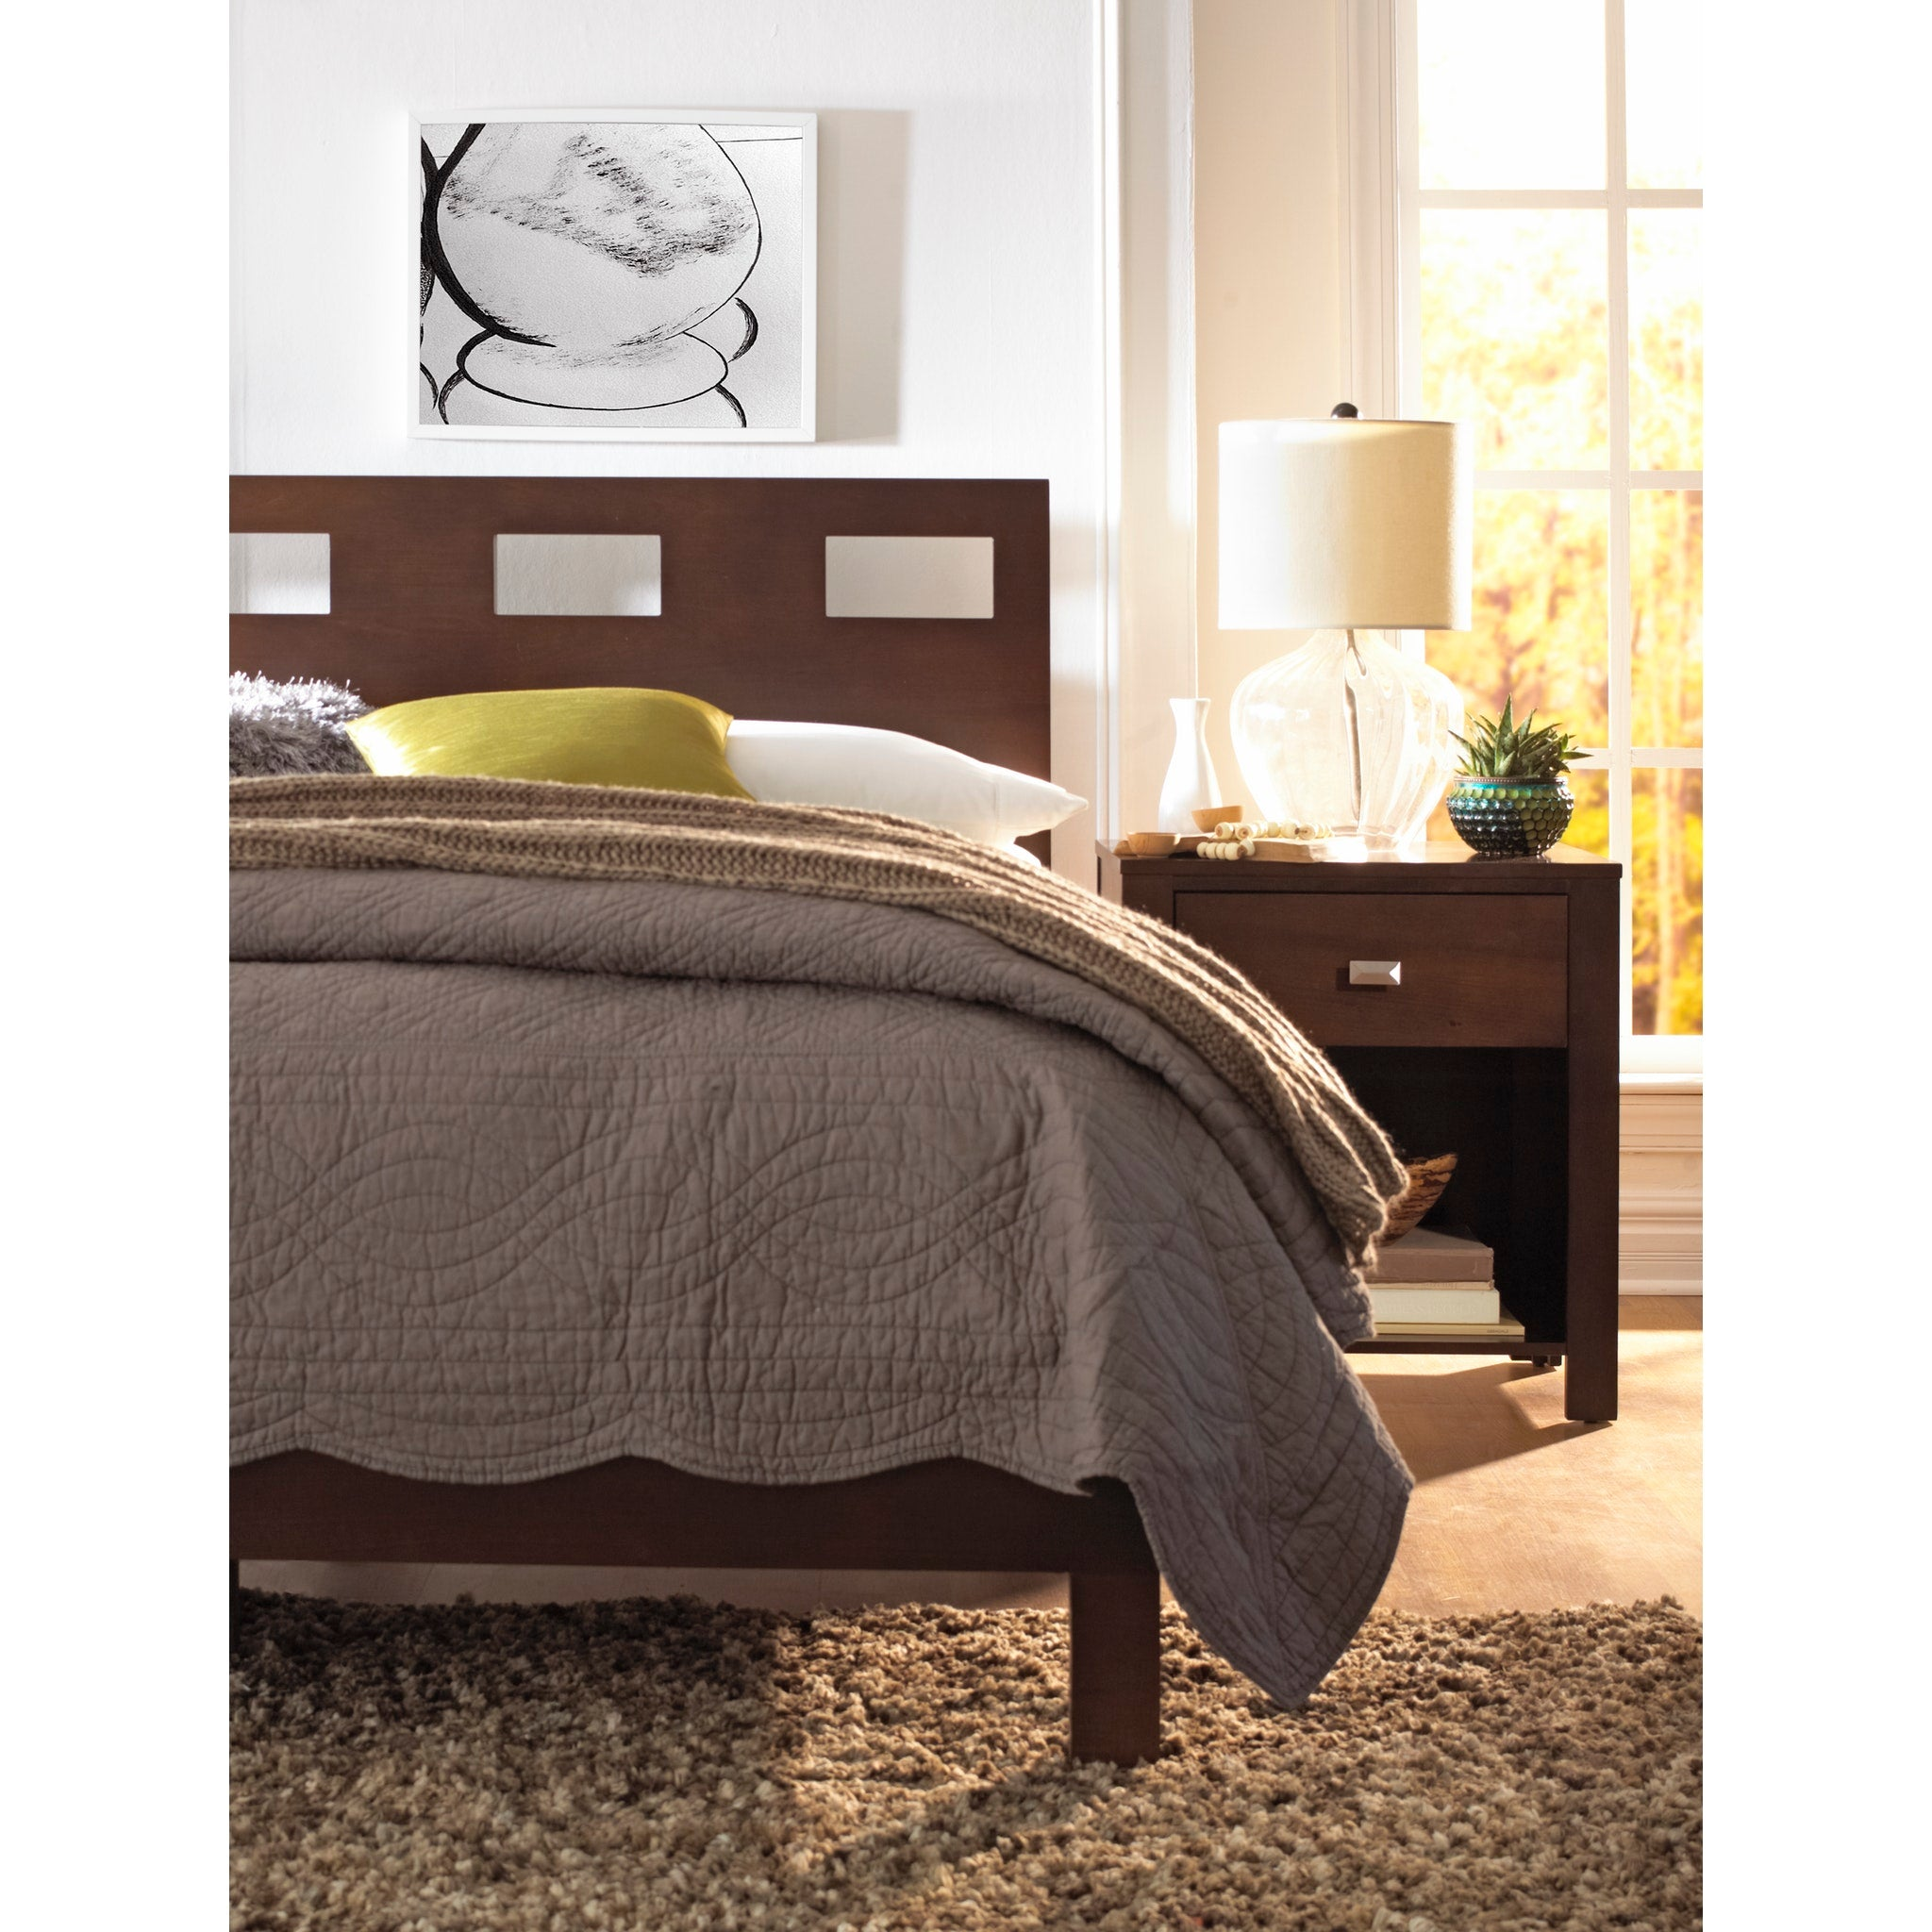 Riva King-size Platform Bed in Chocolate Brown